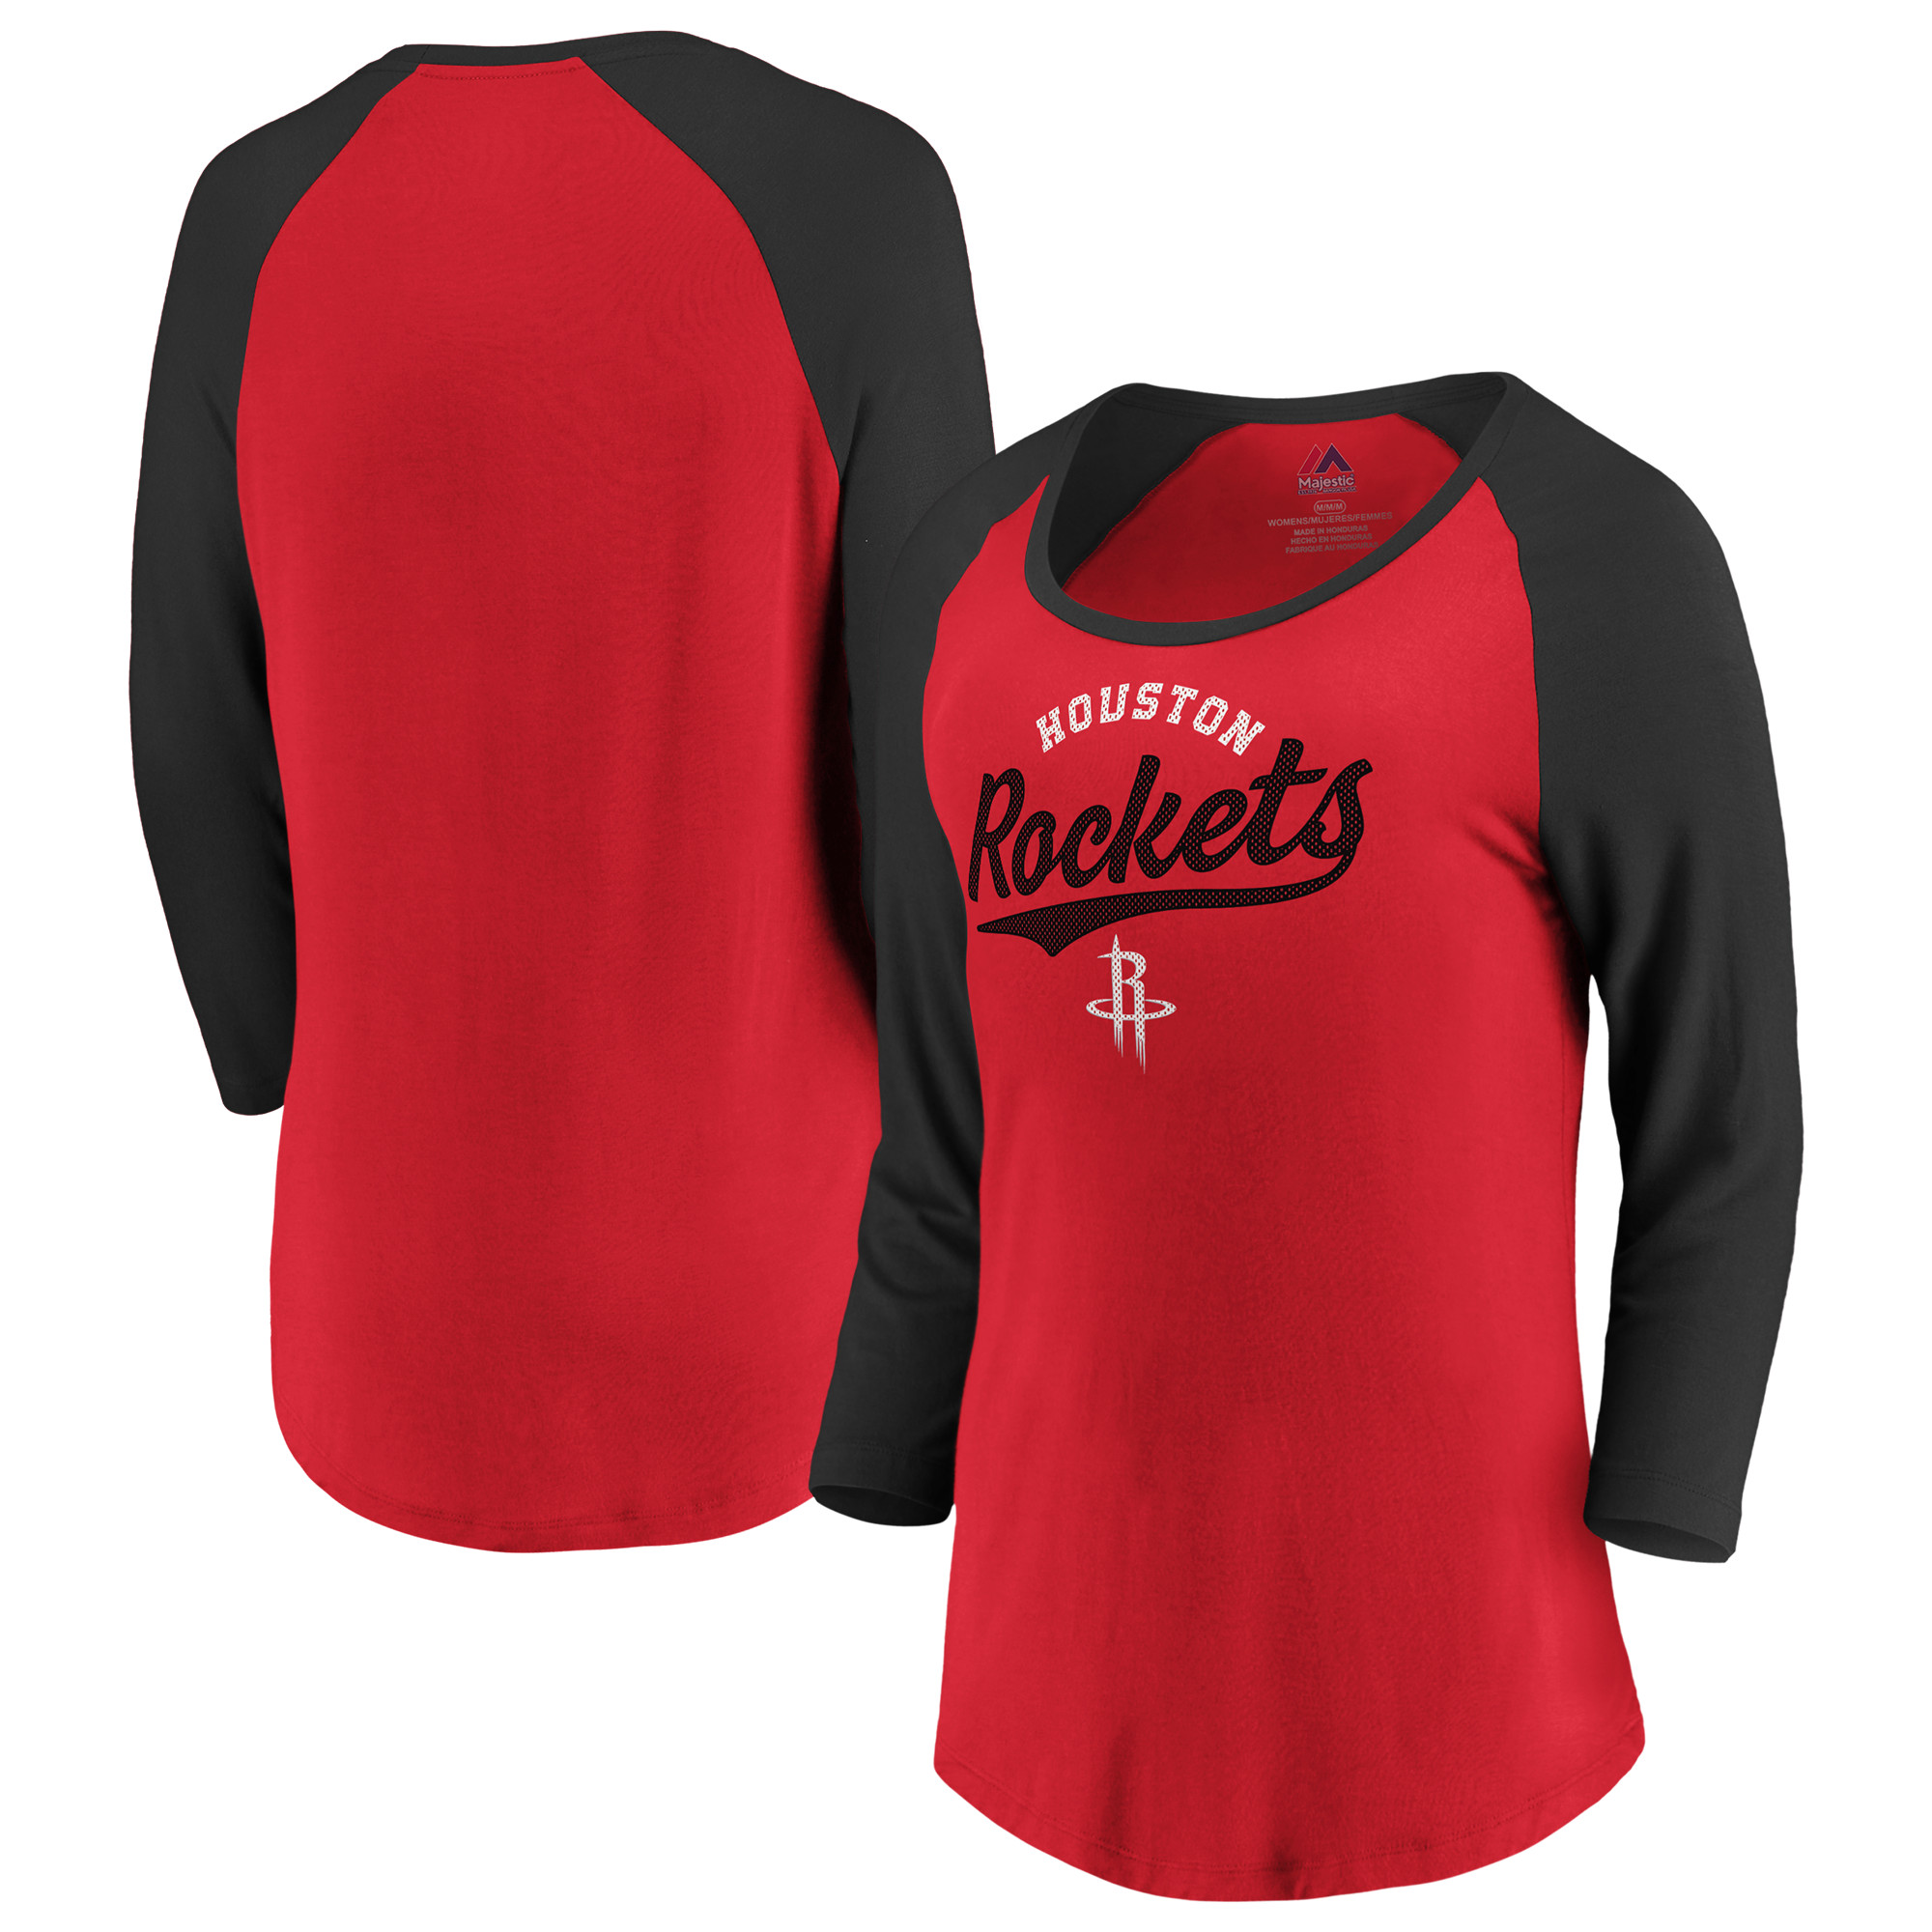 Houston Rockets Fanatics Branded Women's This Decides It 3/4-Sleeve T-Shirt - Red/Black